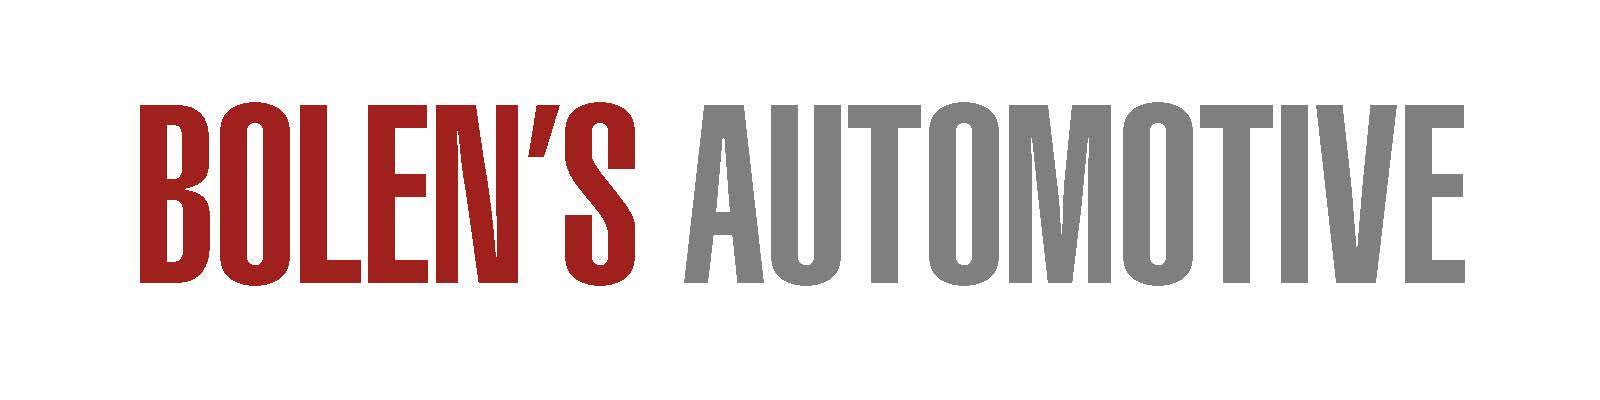 Logo Bolens Automotive  4.11.18.jpg